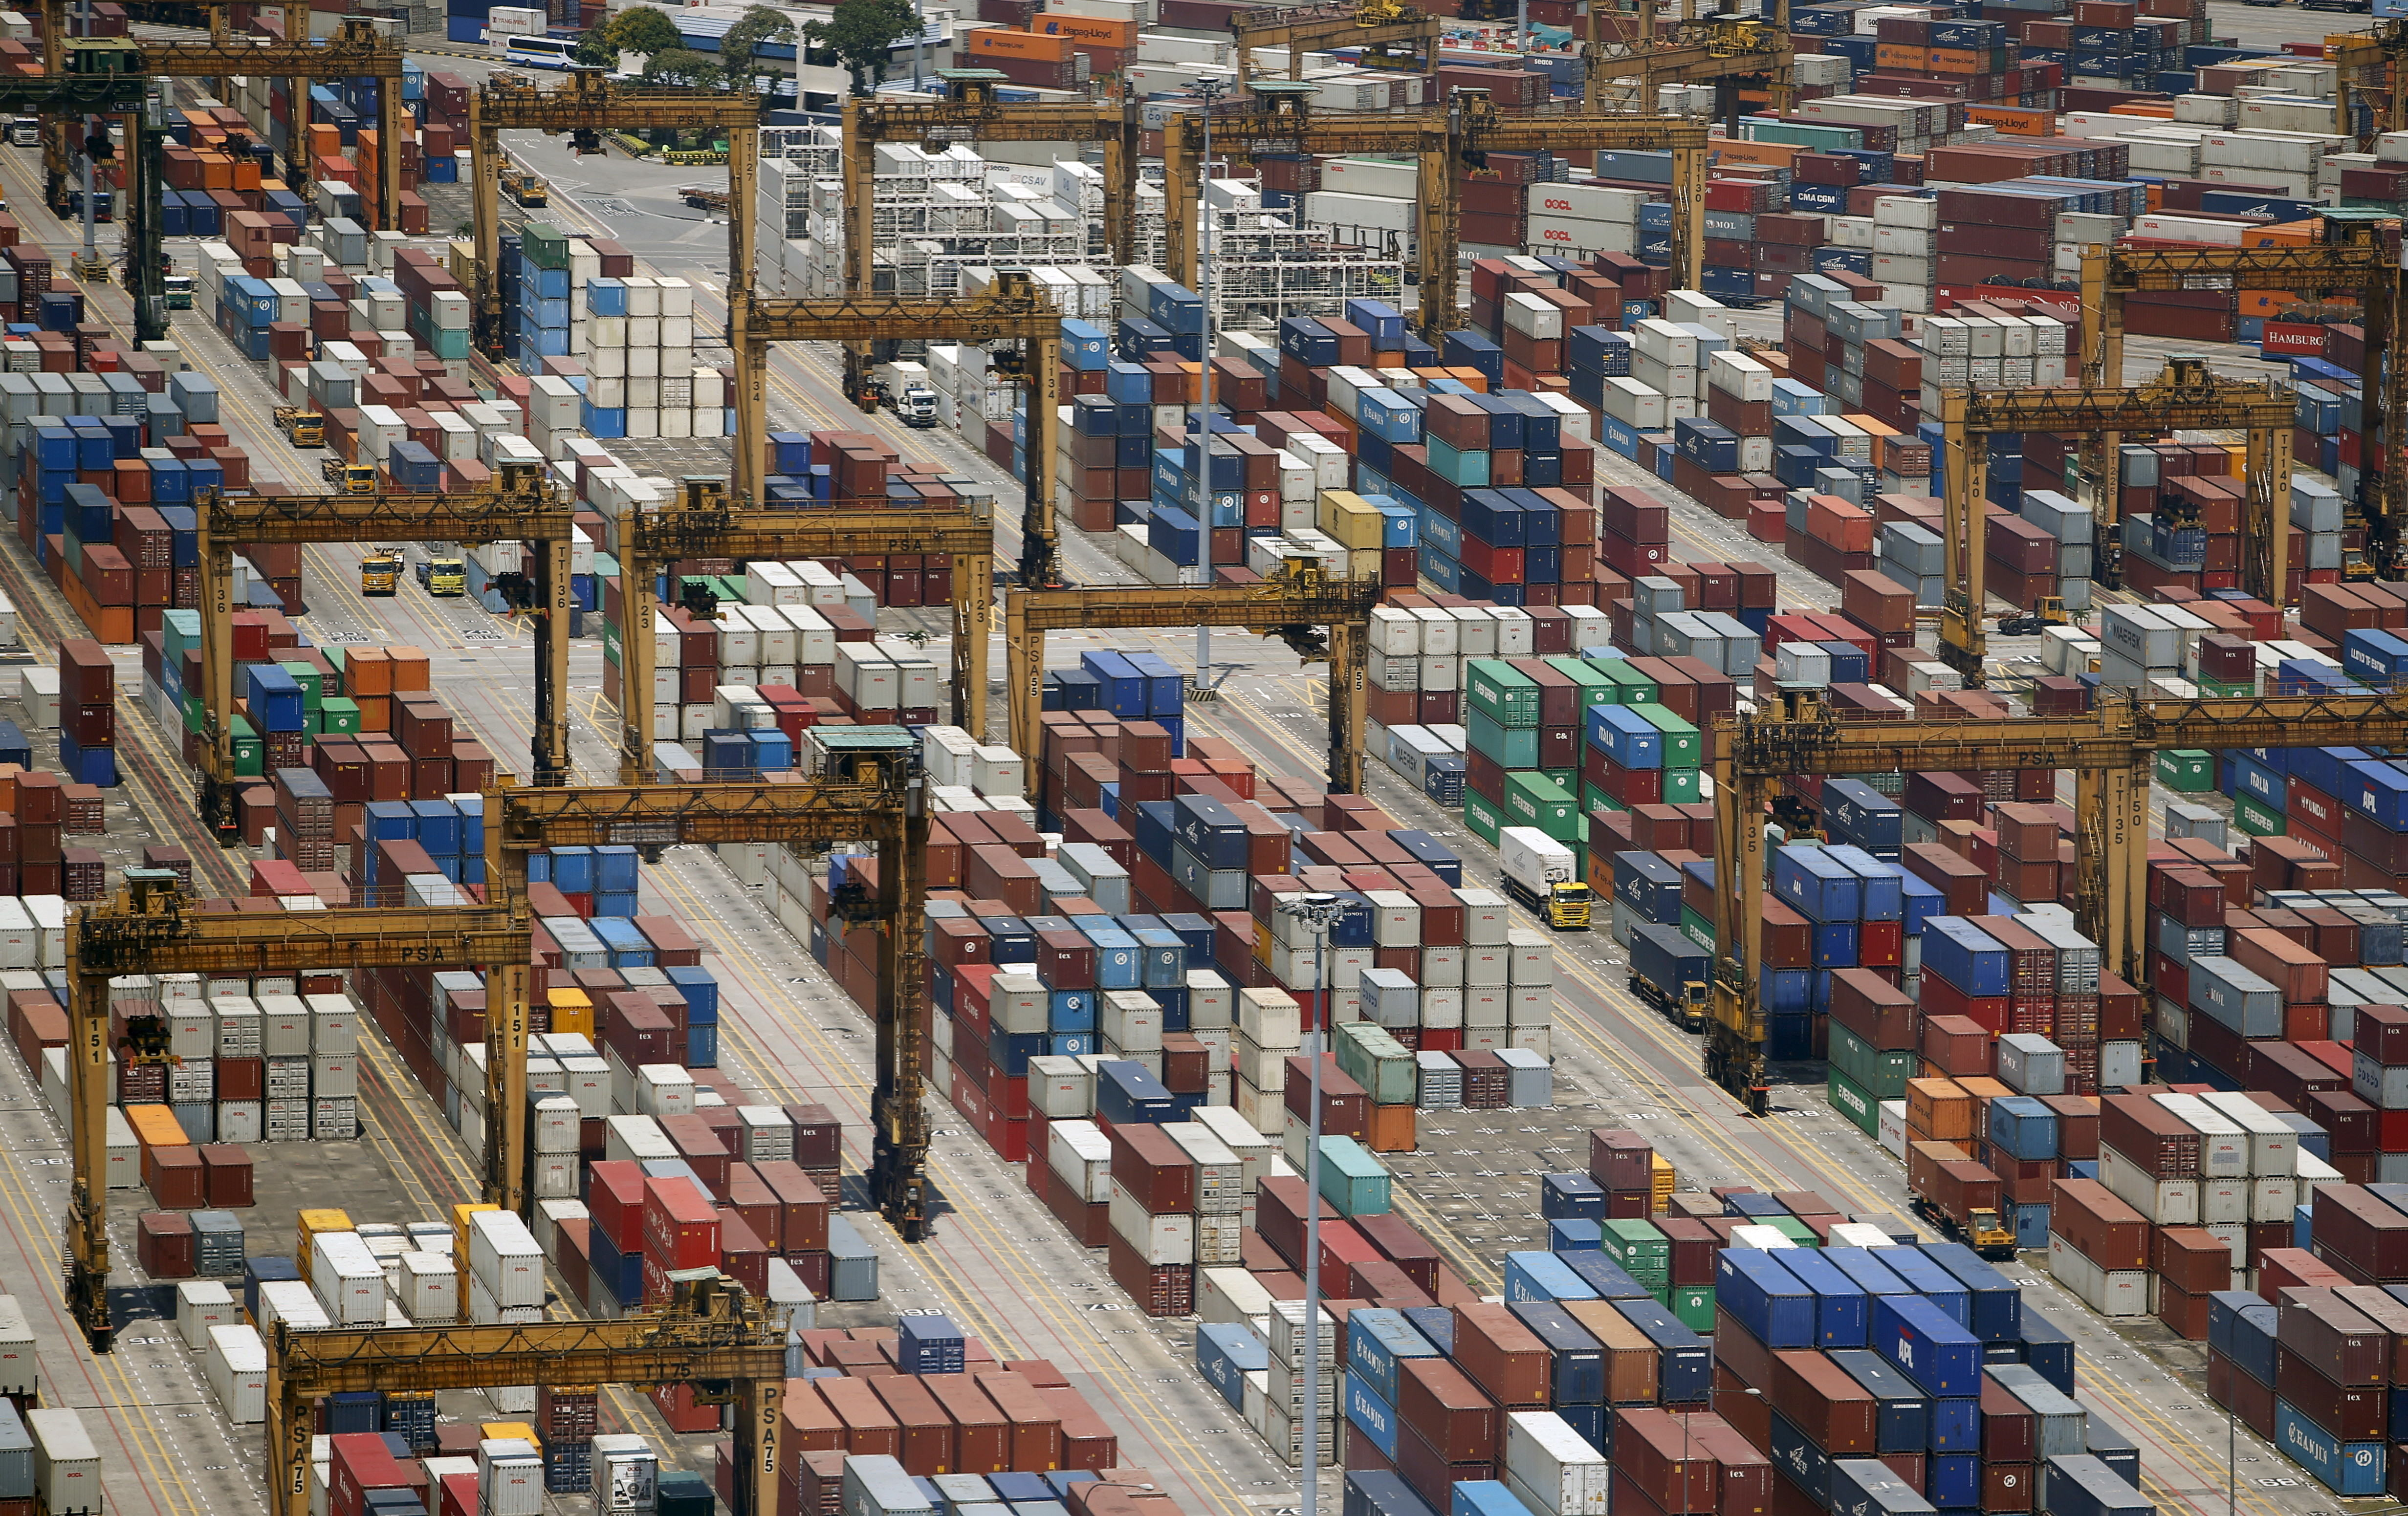 Containers are stacked up at PSA's Tanjong Pagar container terminal in Singapore July 24, 2015. When Singapore celebrated its 50th birthday as an independent country in August, the city state bore little resemblance to the tiny island nation that was expelled from Malaysia in 1965. Its physical stature has swollen by 20 percent thanks to one of the world's most aggressive land reclamation drives.  REUTERS/Edgar SuPICTURE 4 OF 31 FOR WIDER IMAGE STORY 'EARTHPRINTS: SINGAPORE' SEARCH 'EARTHPRINTS SINGAPORE' FOR ALL IMAGES - GF20000065701